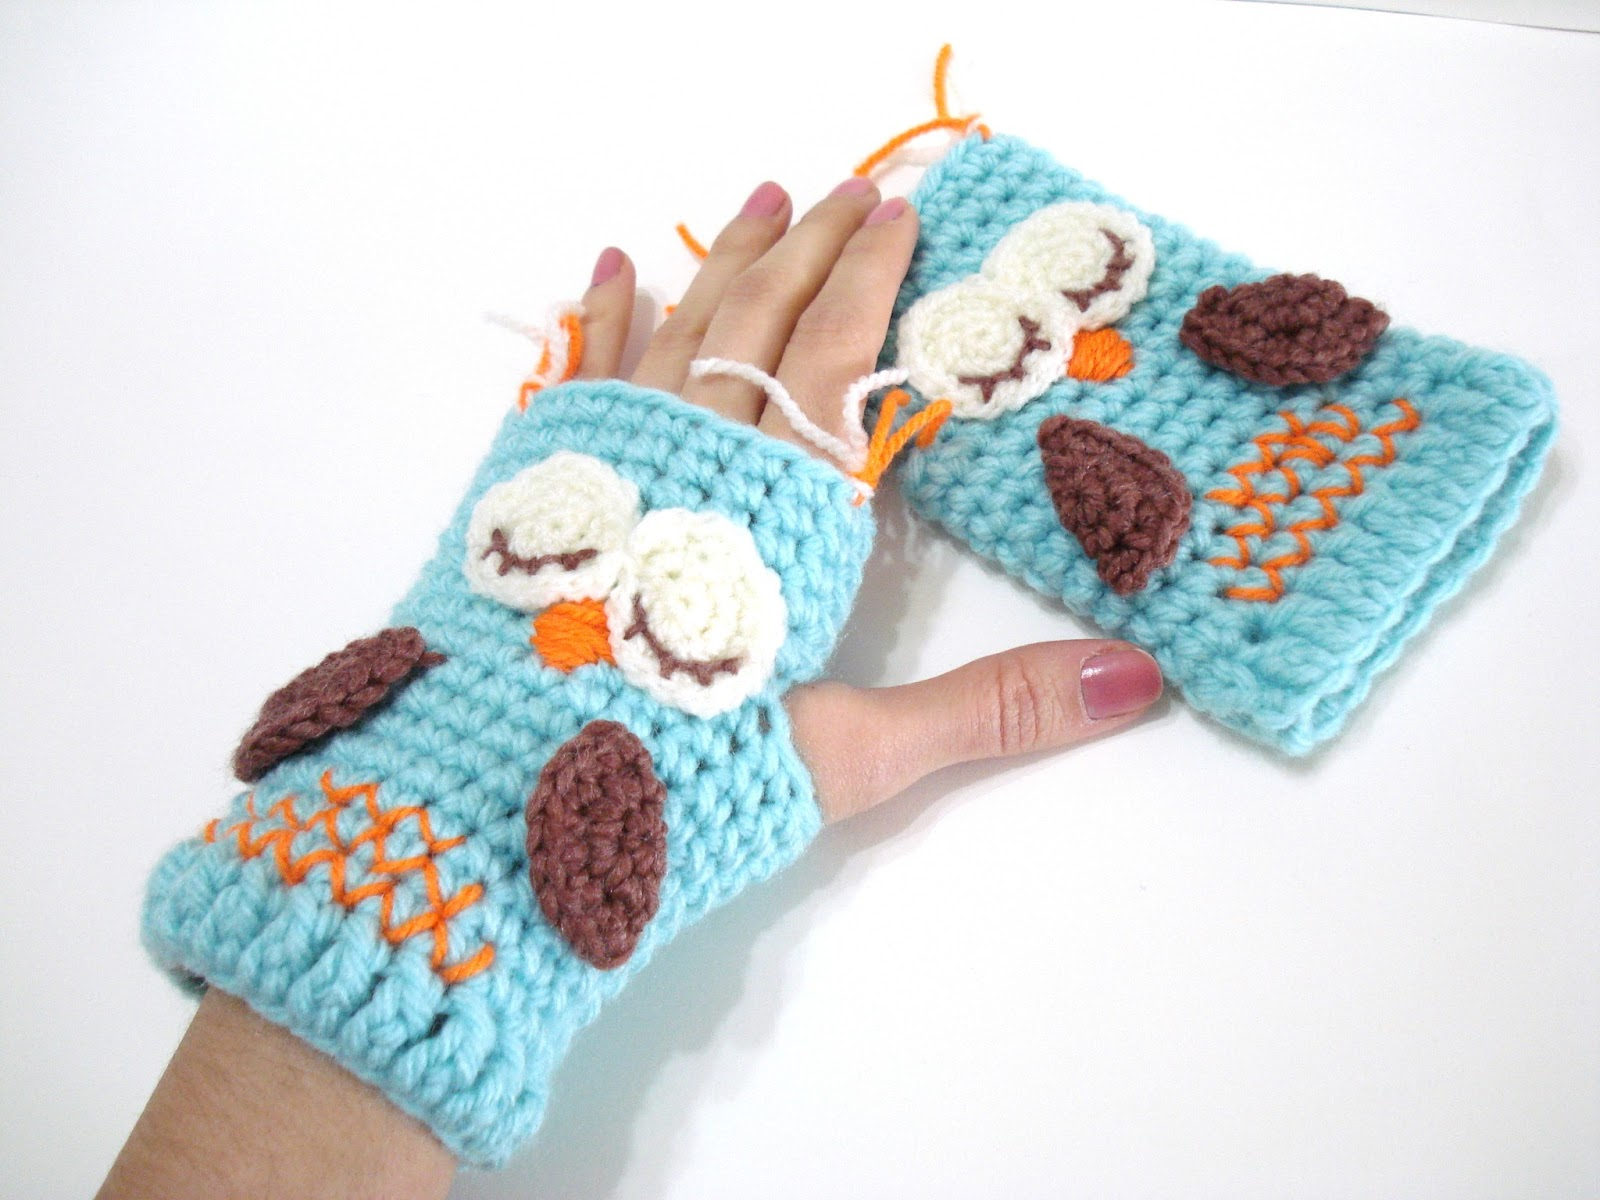 Crochet Patterns Tutorial : ... Pattern, Owl Gloves Pattern, Tutorial, Crochet Tutorial, Owl Gloves